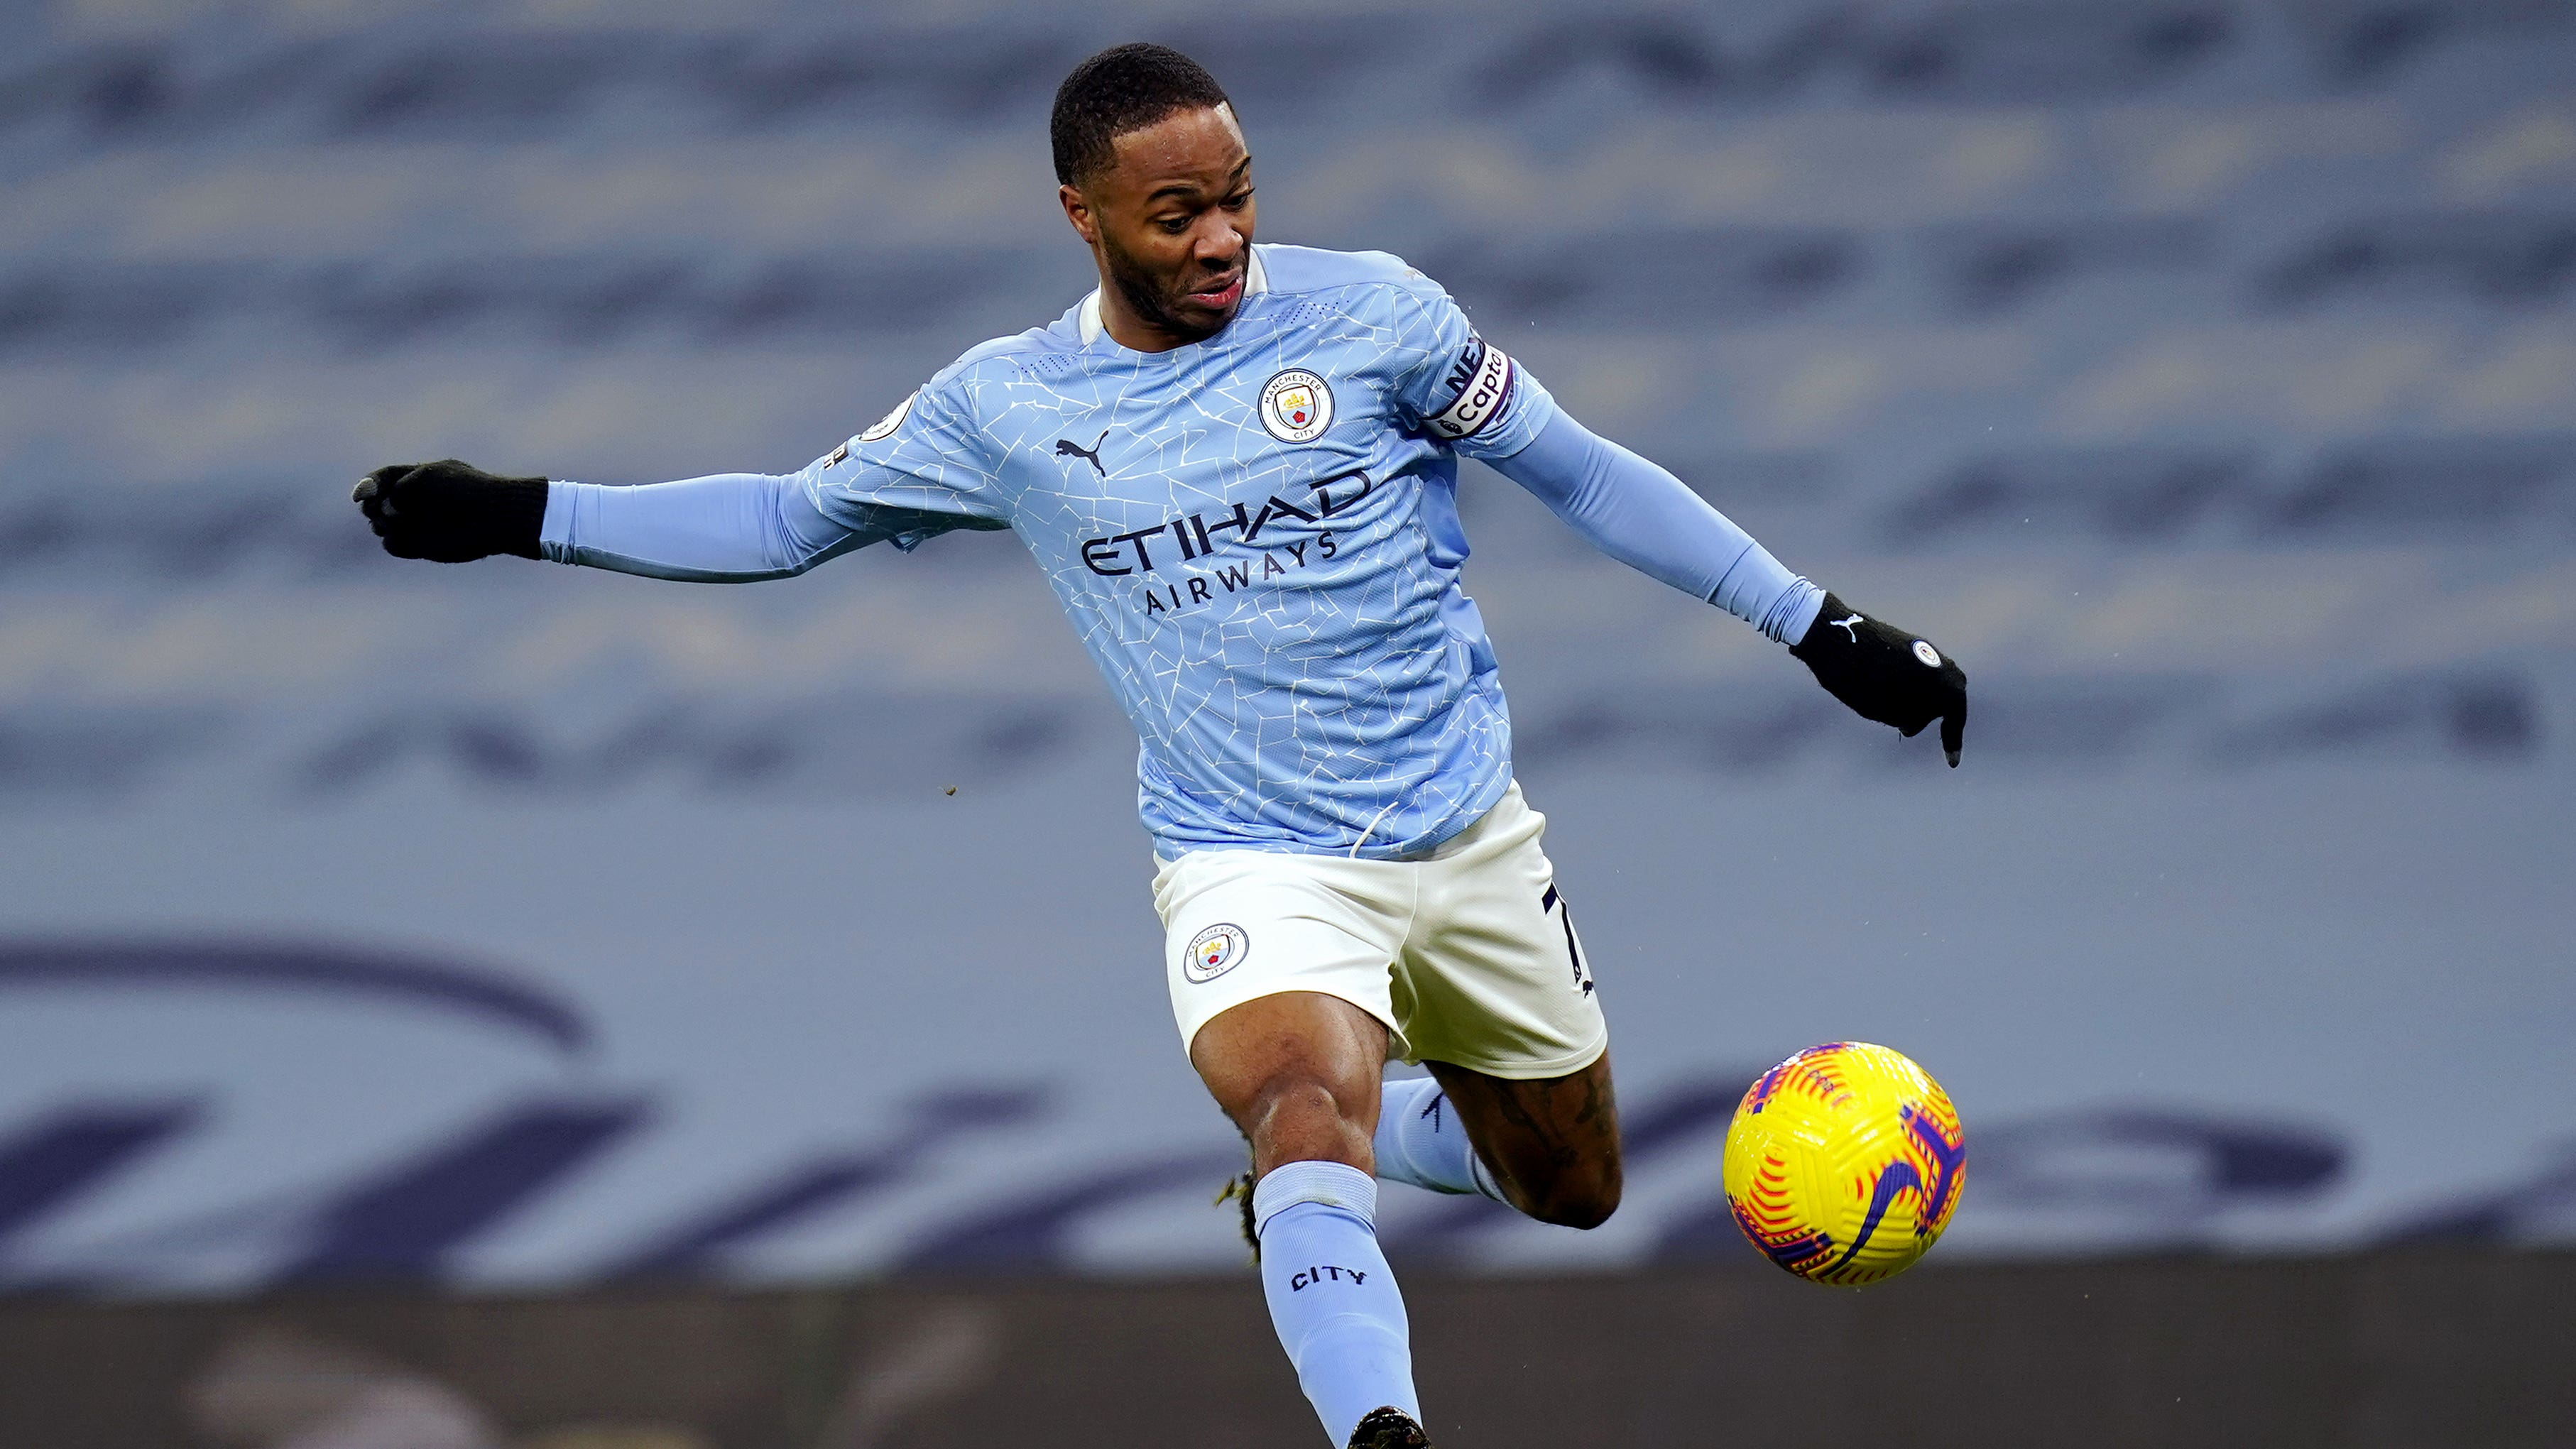 Pep Guardiola doesn't worry about Raheem Sterling's current form